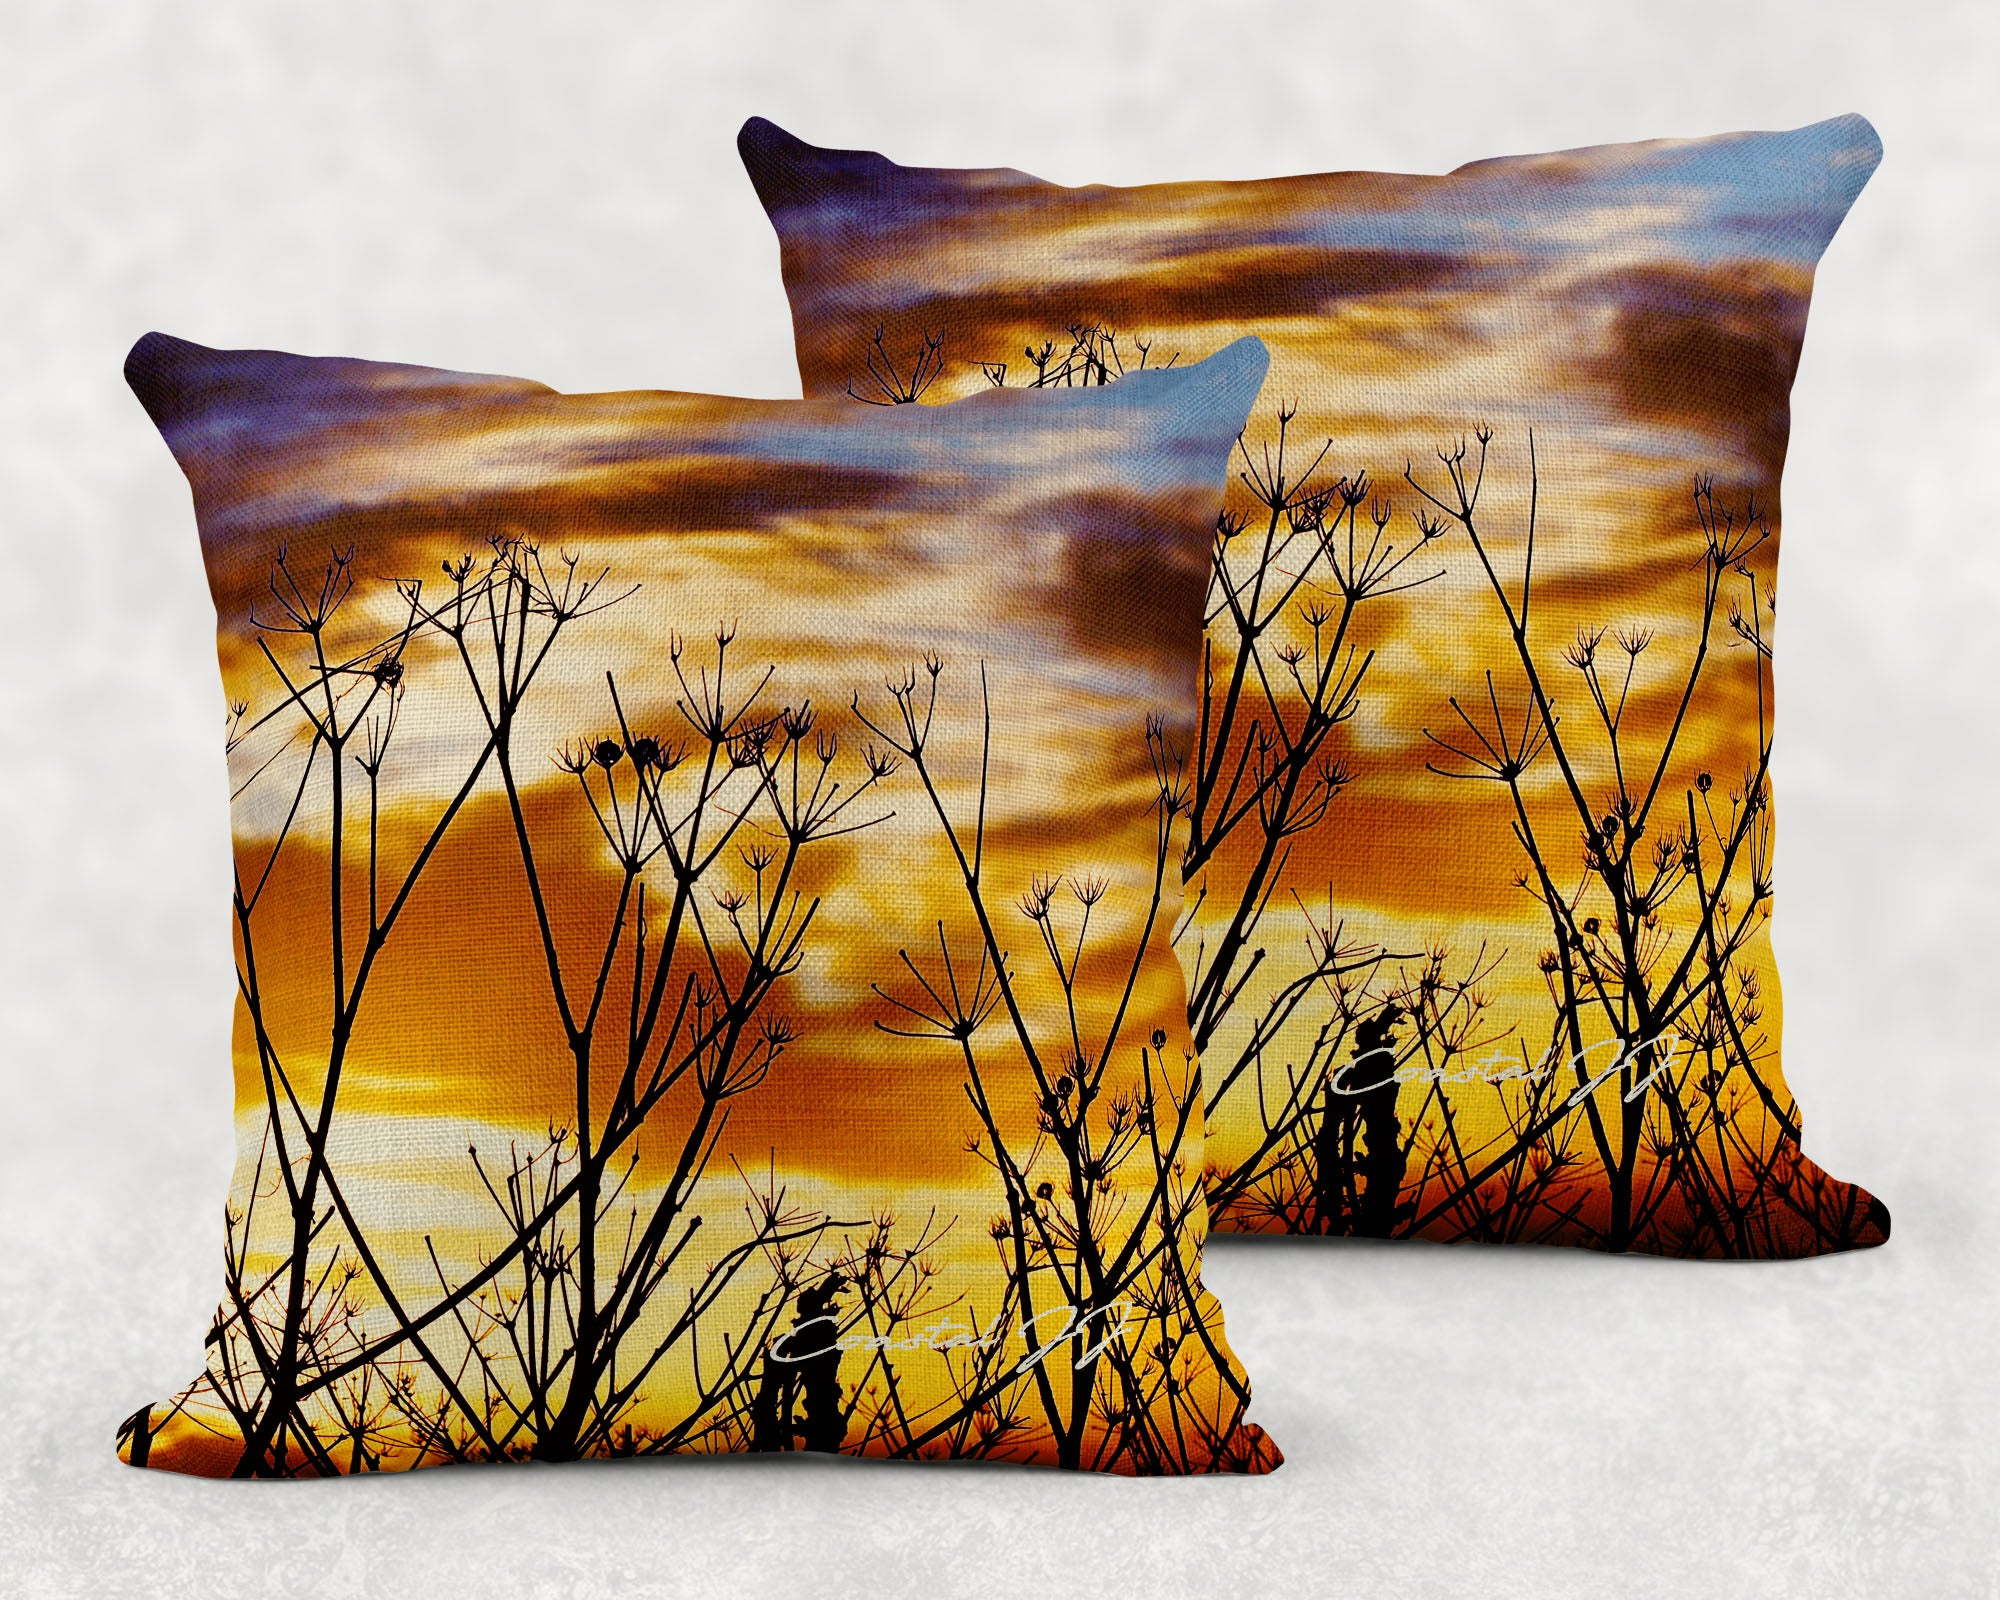 'Seashore Seed Heads on an Autumnal Evening' - Large Sofa Cushion